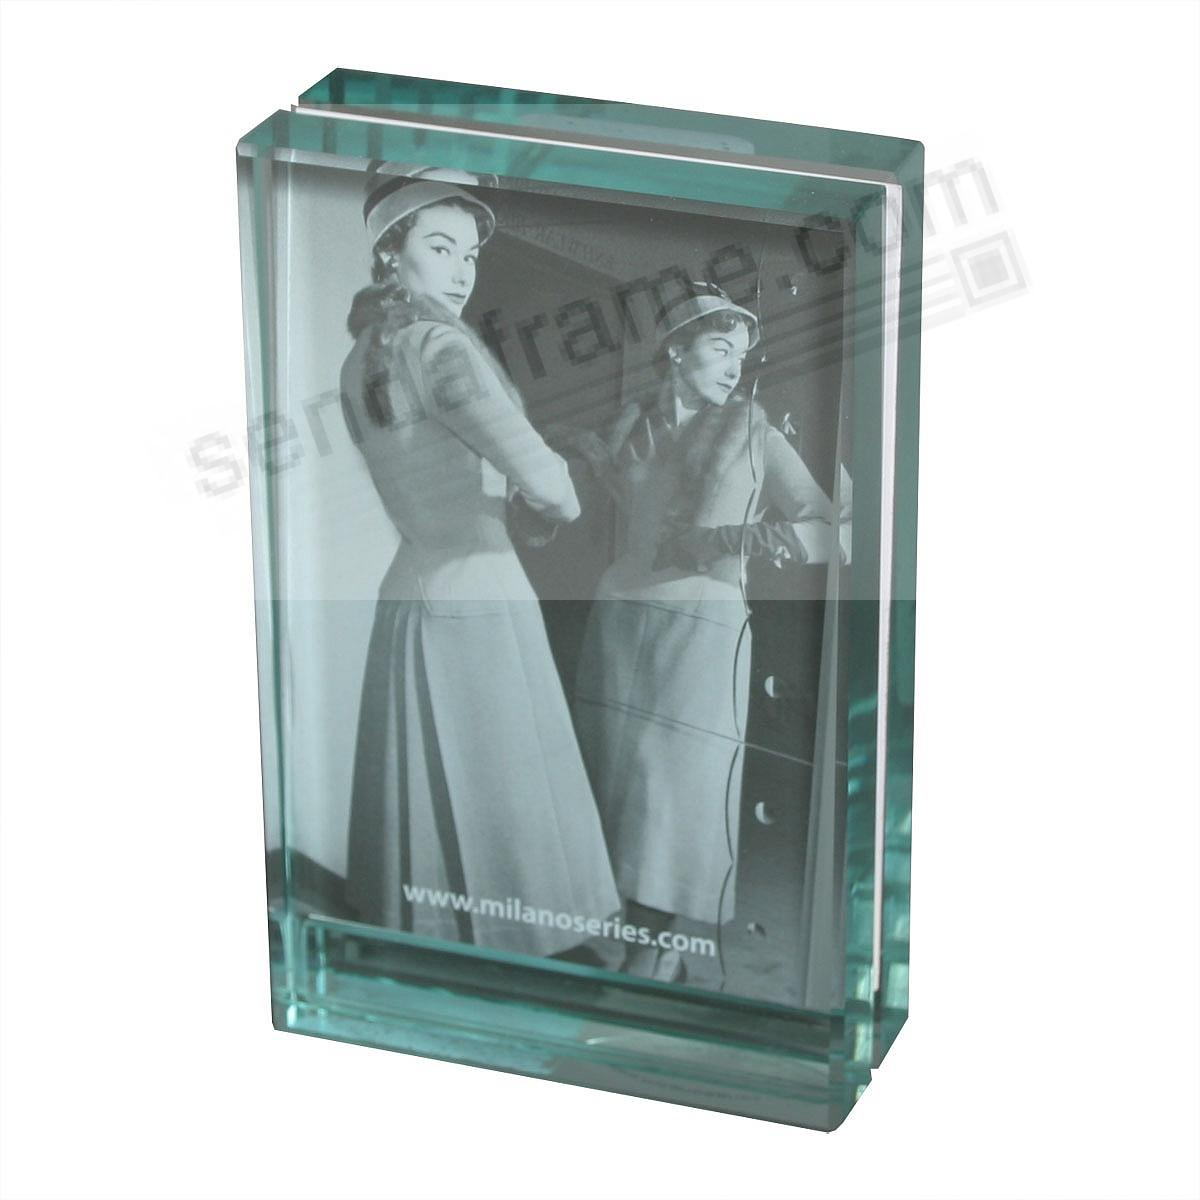 CLARITY Glass Block 2½x3½ frame by Milano Series® - Picture Frames ...